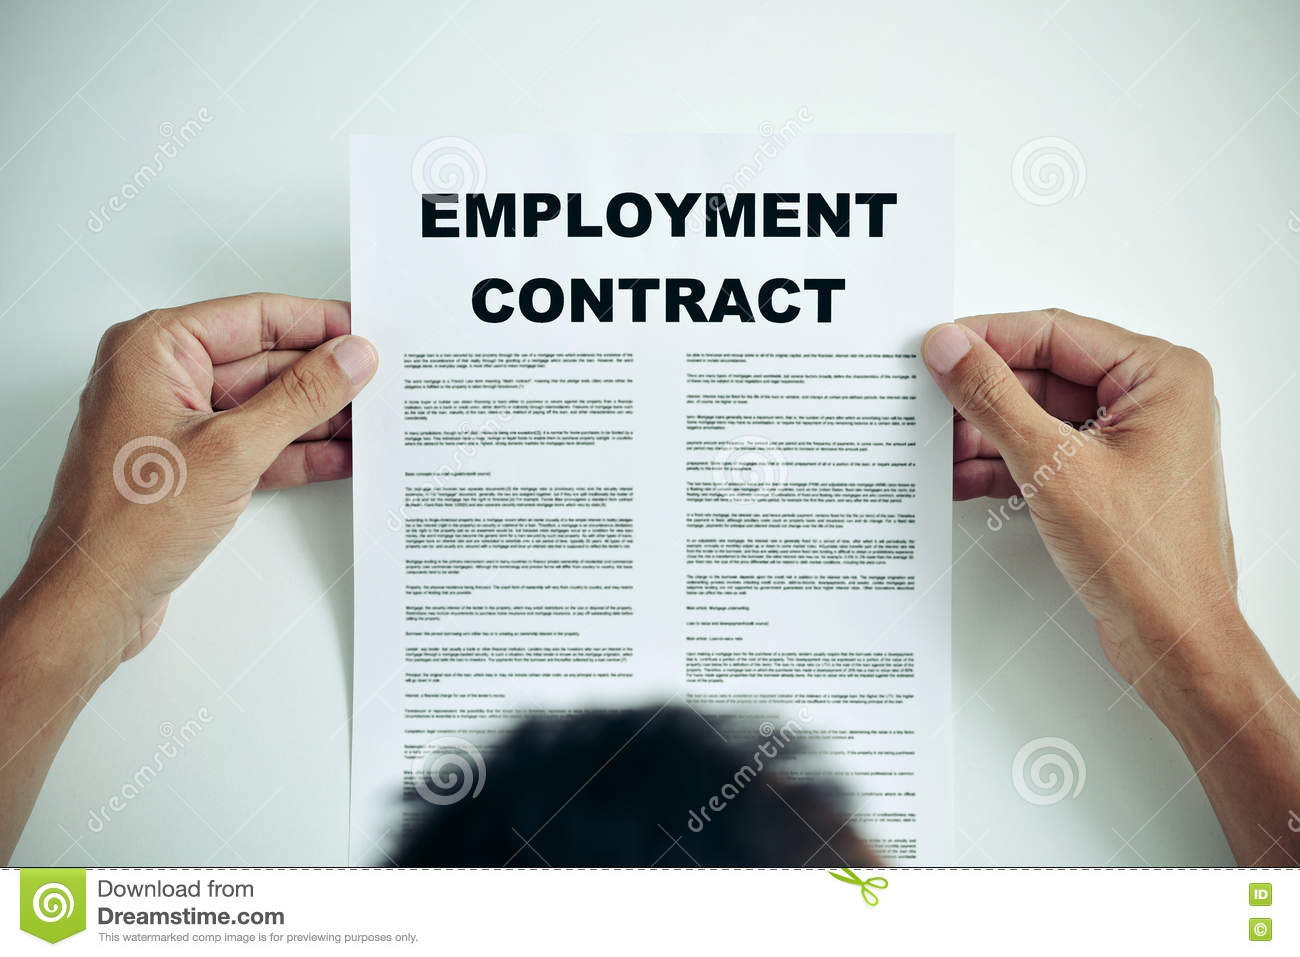 Man reading an employment contract